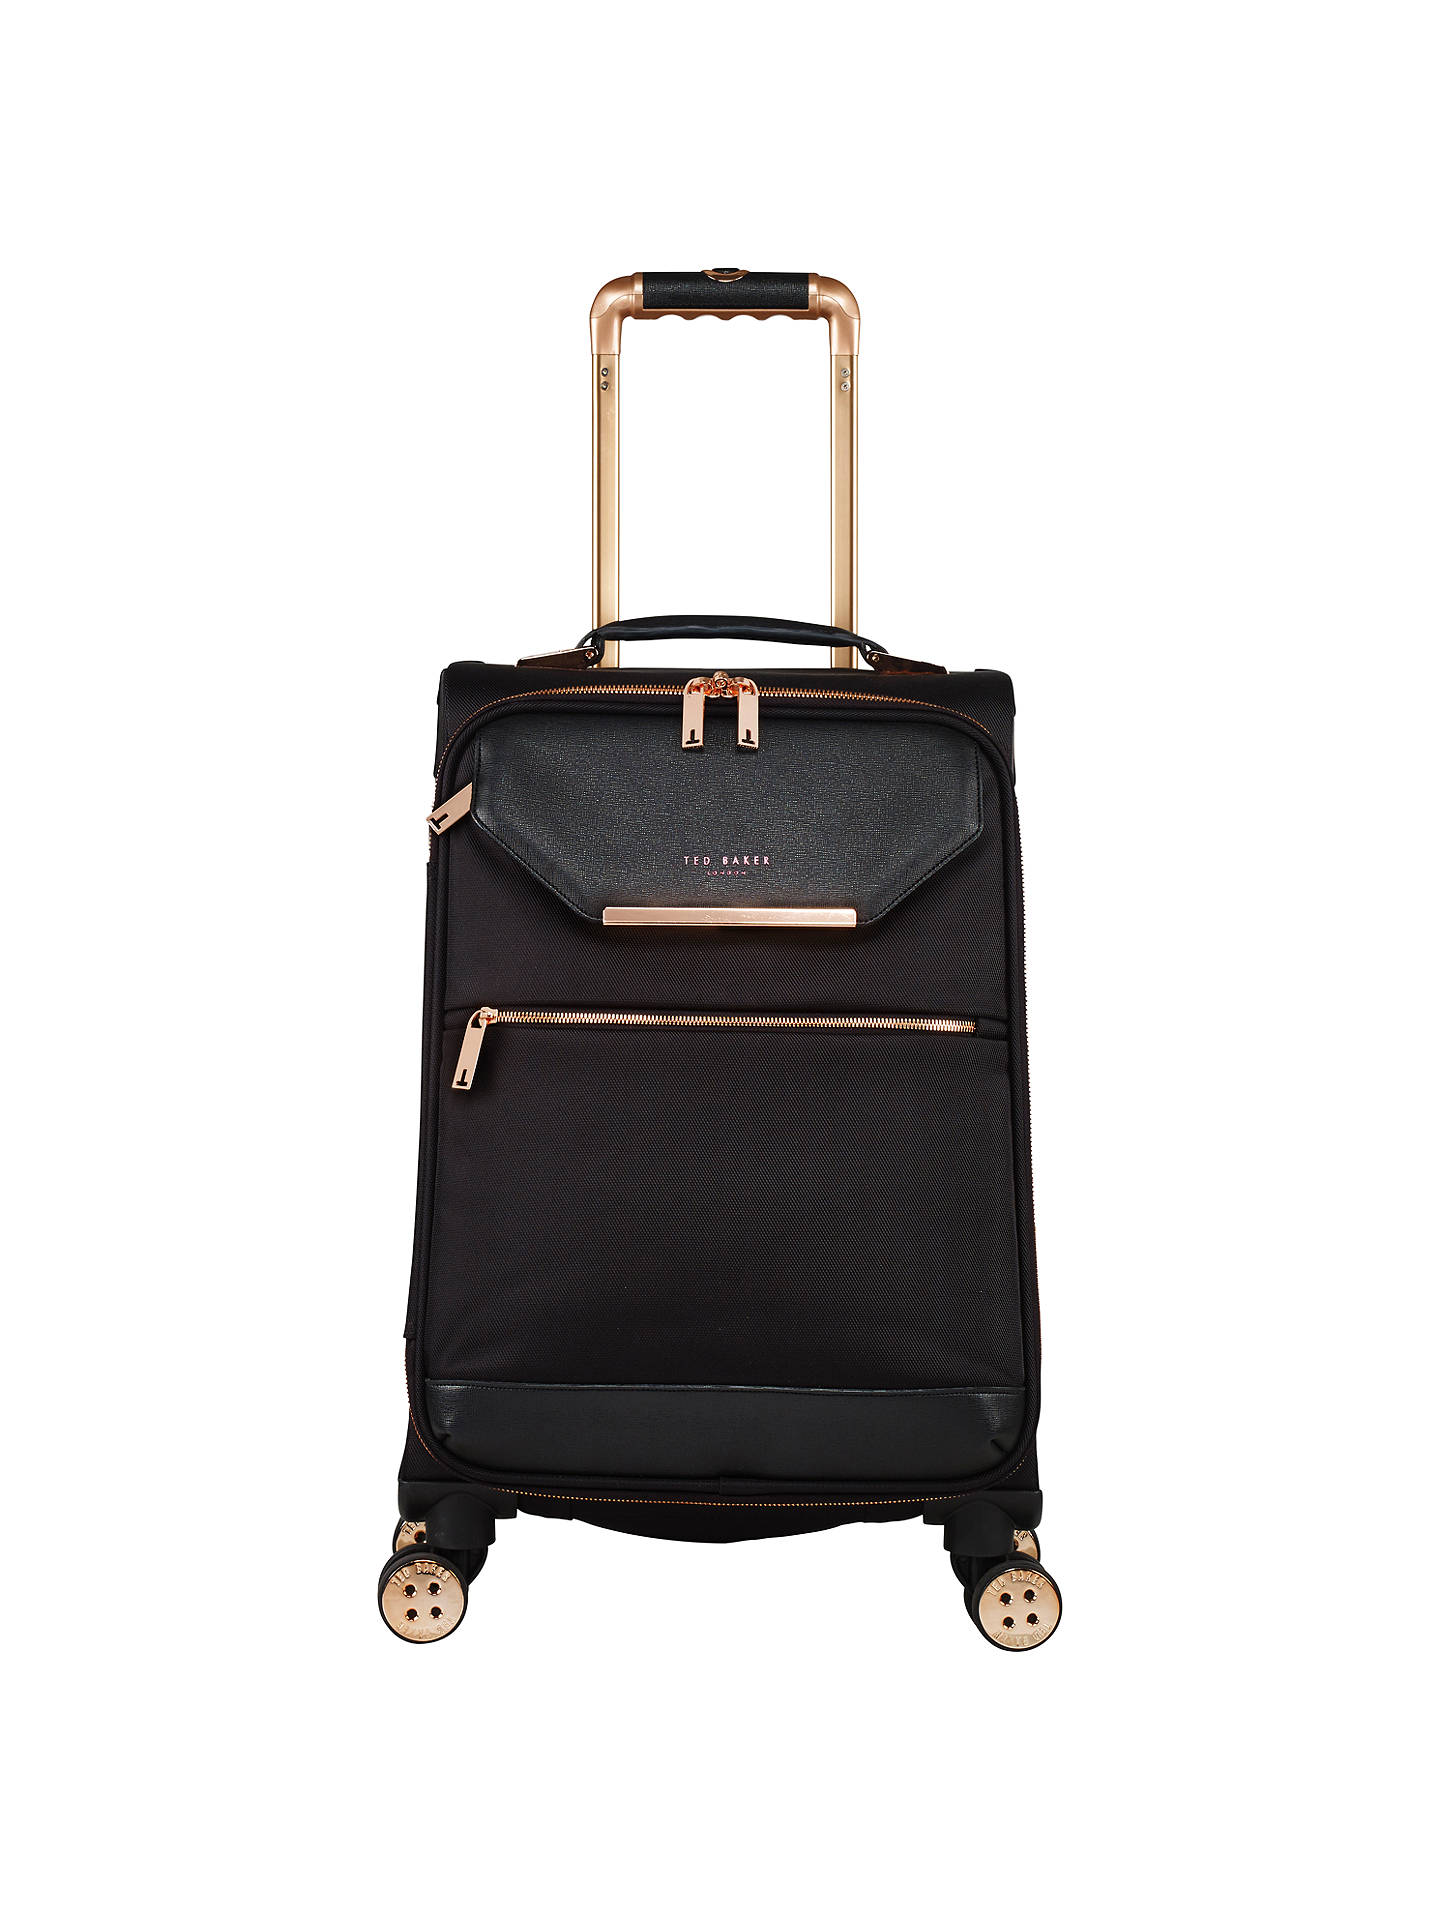 f7f7be89c Ted Baker Soft Albany 56cm 4-Wheel Cabin Case at John Lewis   Partners